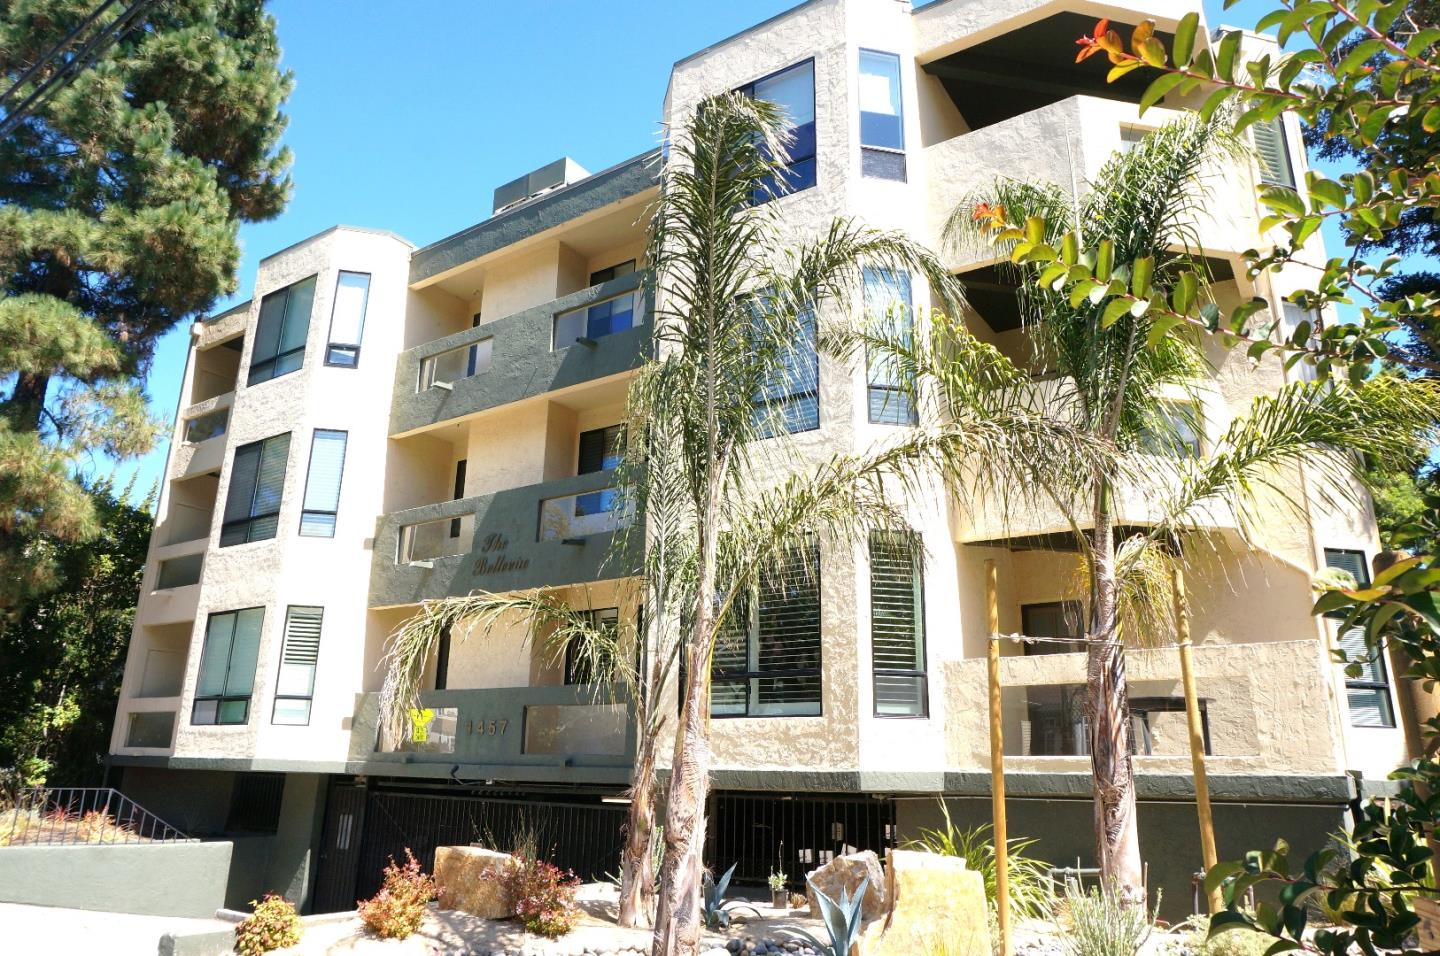 1457 Bellevue AVE 11, one of homes for sale in Burlingame